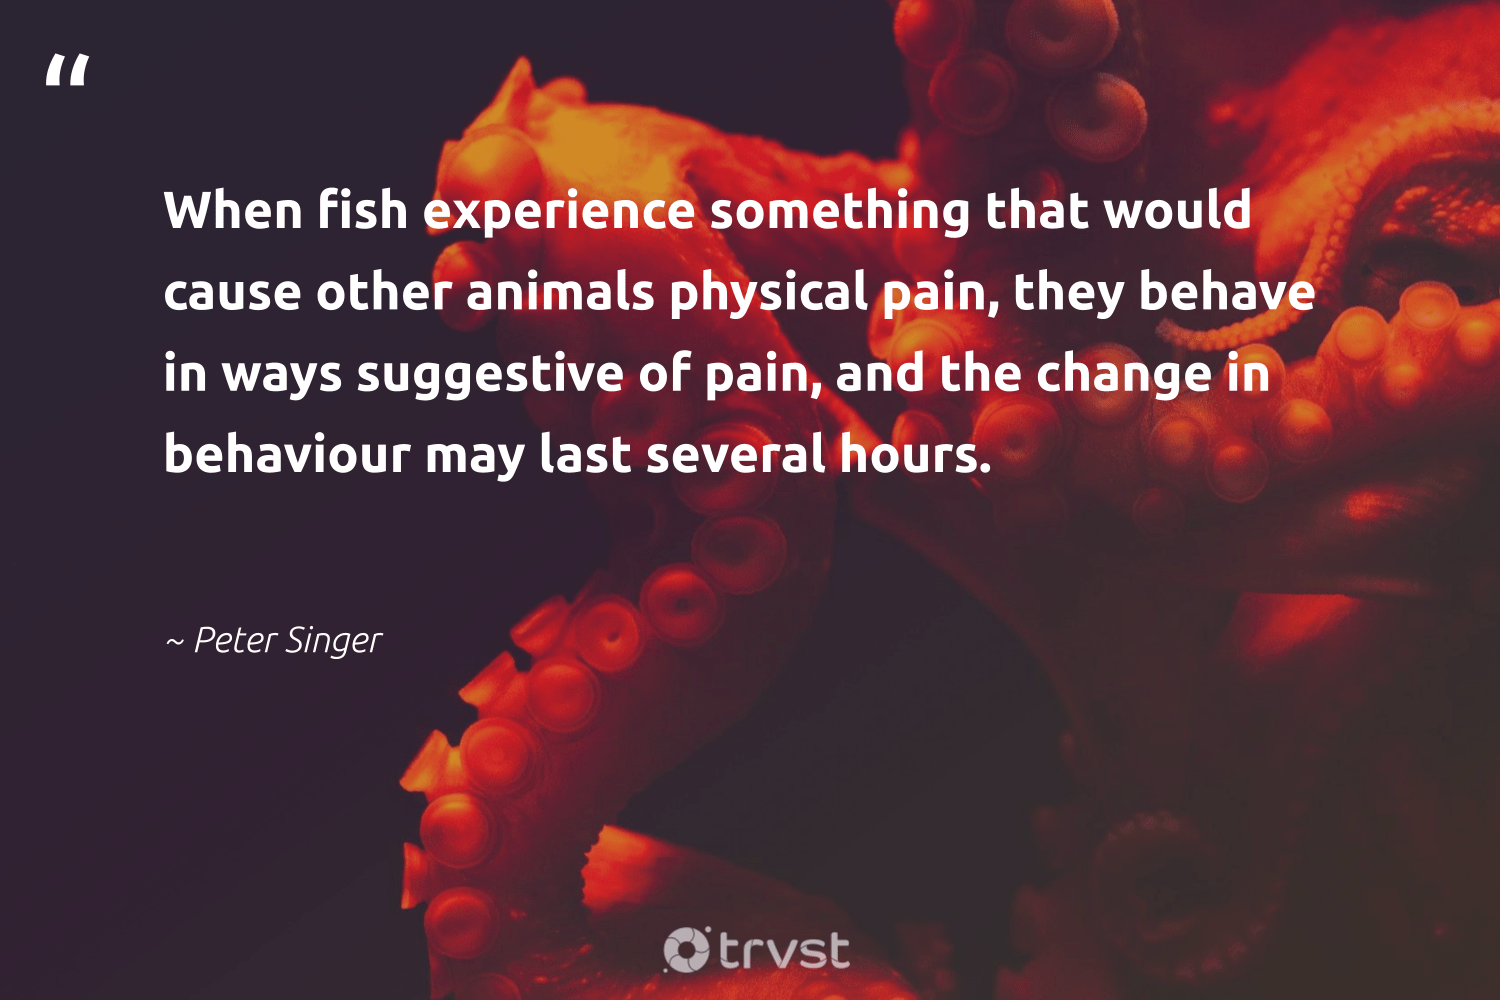 """""""When fish experience something that would cause other animals physical pain, they behave in ways suggestive of pain, and the change in behaviour may last several hours.""""  - Peter Singer #trvst #quotes #fish #animals #cause #animallovers #conservation #biology #bethechange #animal #nature #geology"""